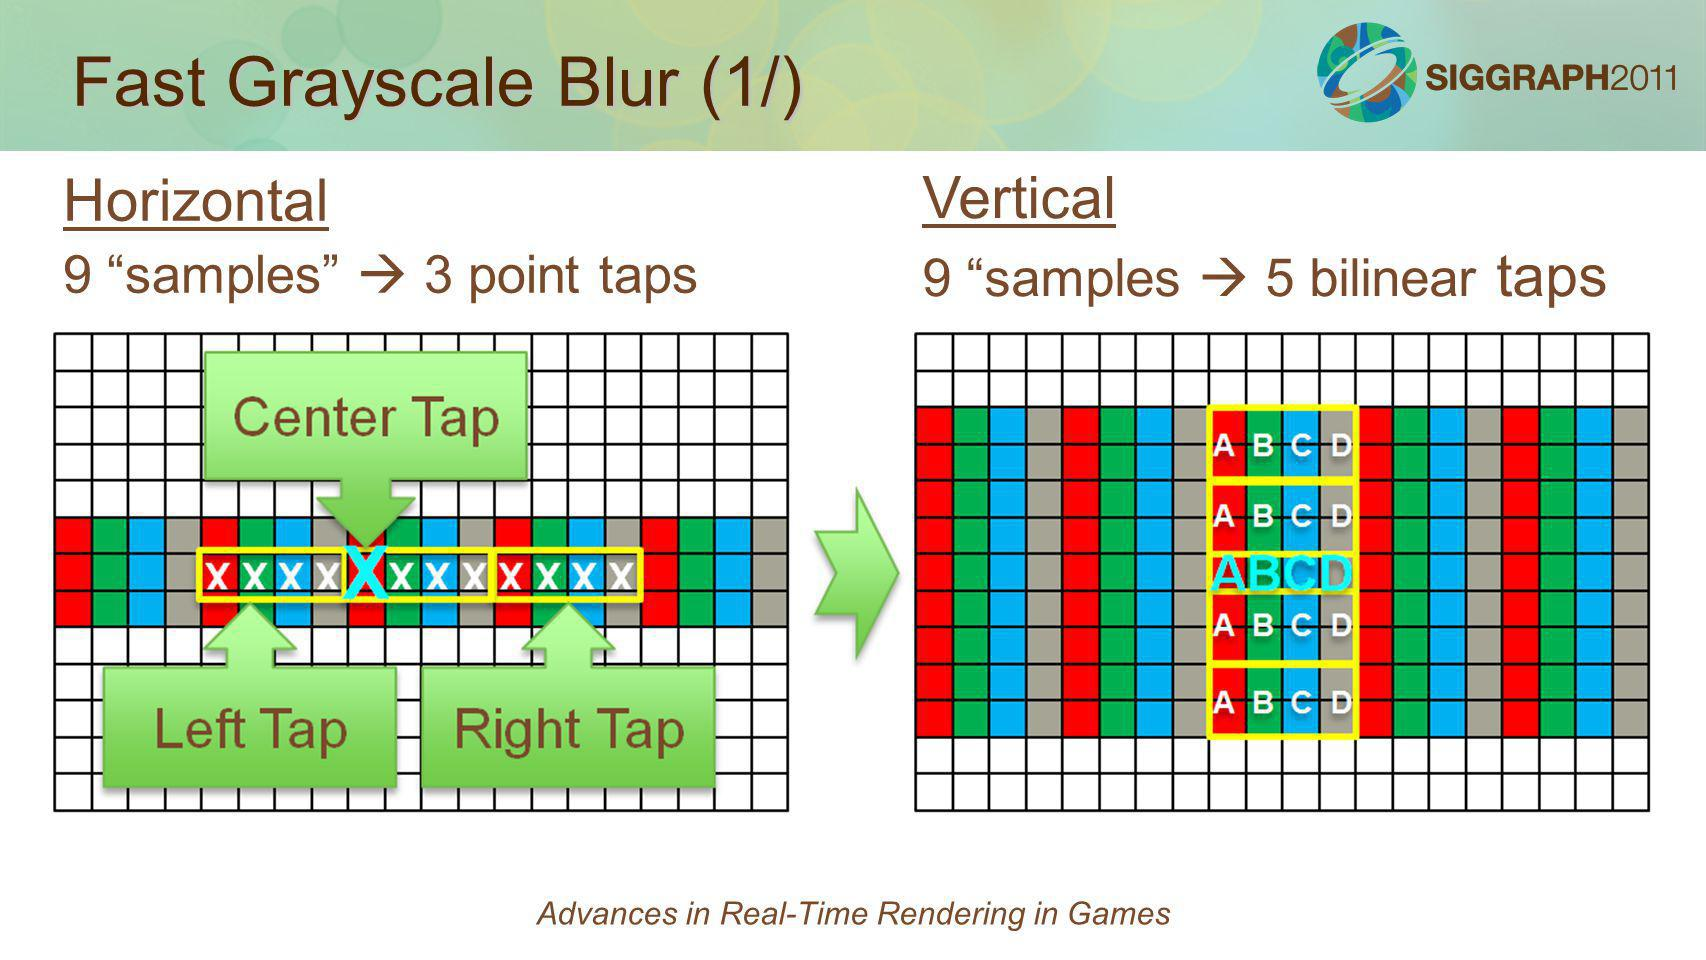 Fast Grayscale Blur (1/) Horizontal 9 samples 3 point taps Vertical 9 samples 5 bilinear taps Advances in Real-Time Rendering in Games